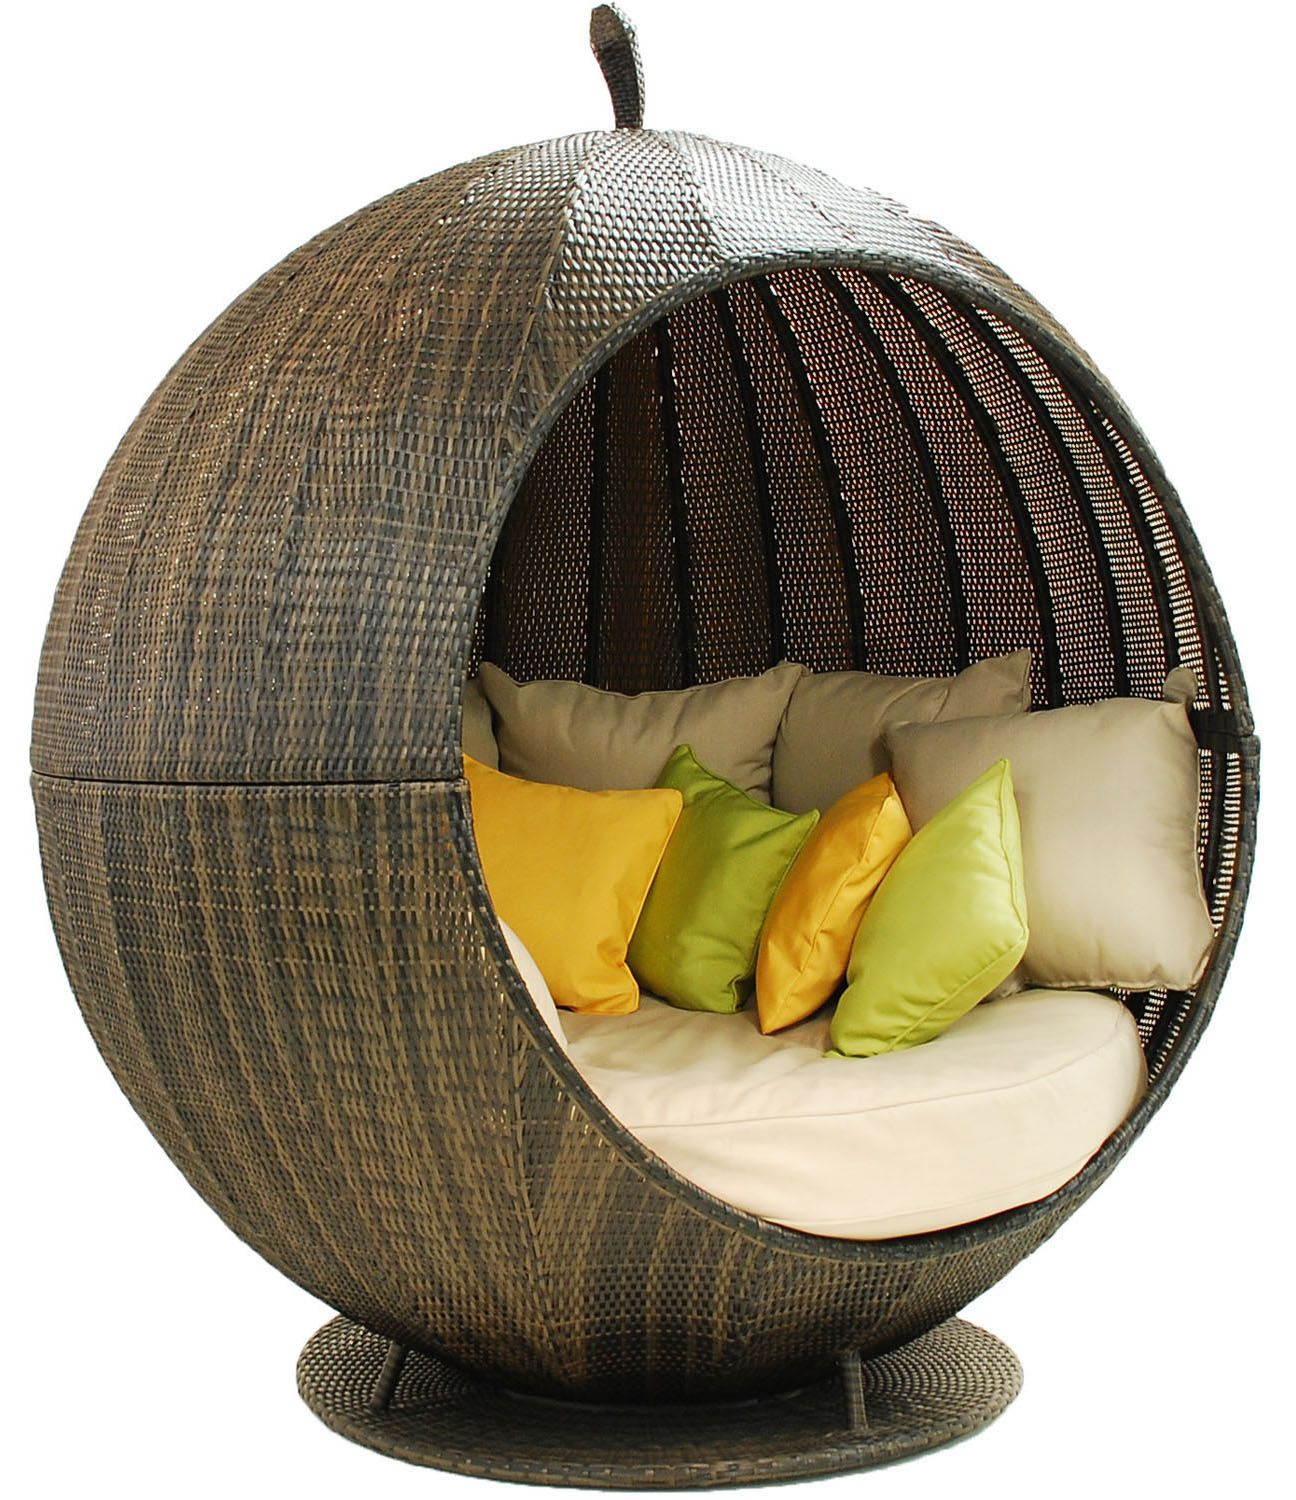 Rattan daybed pod. £899.99 http://www.worldstores.co.uk/p ...